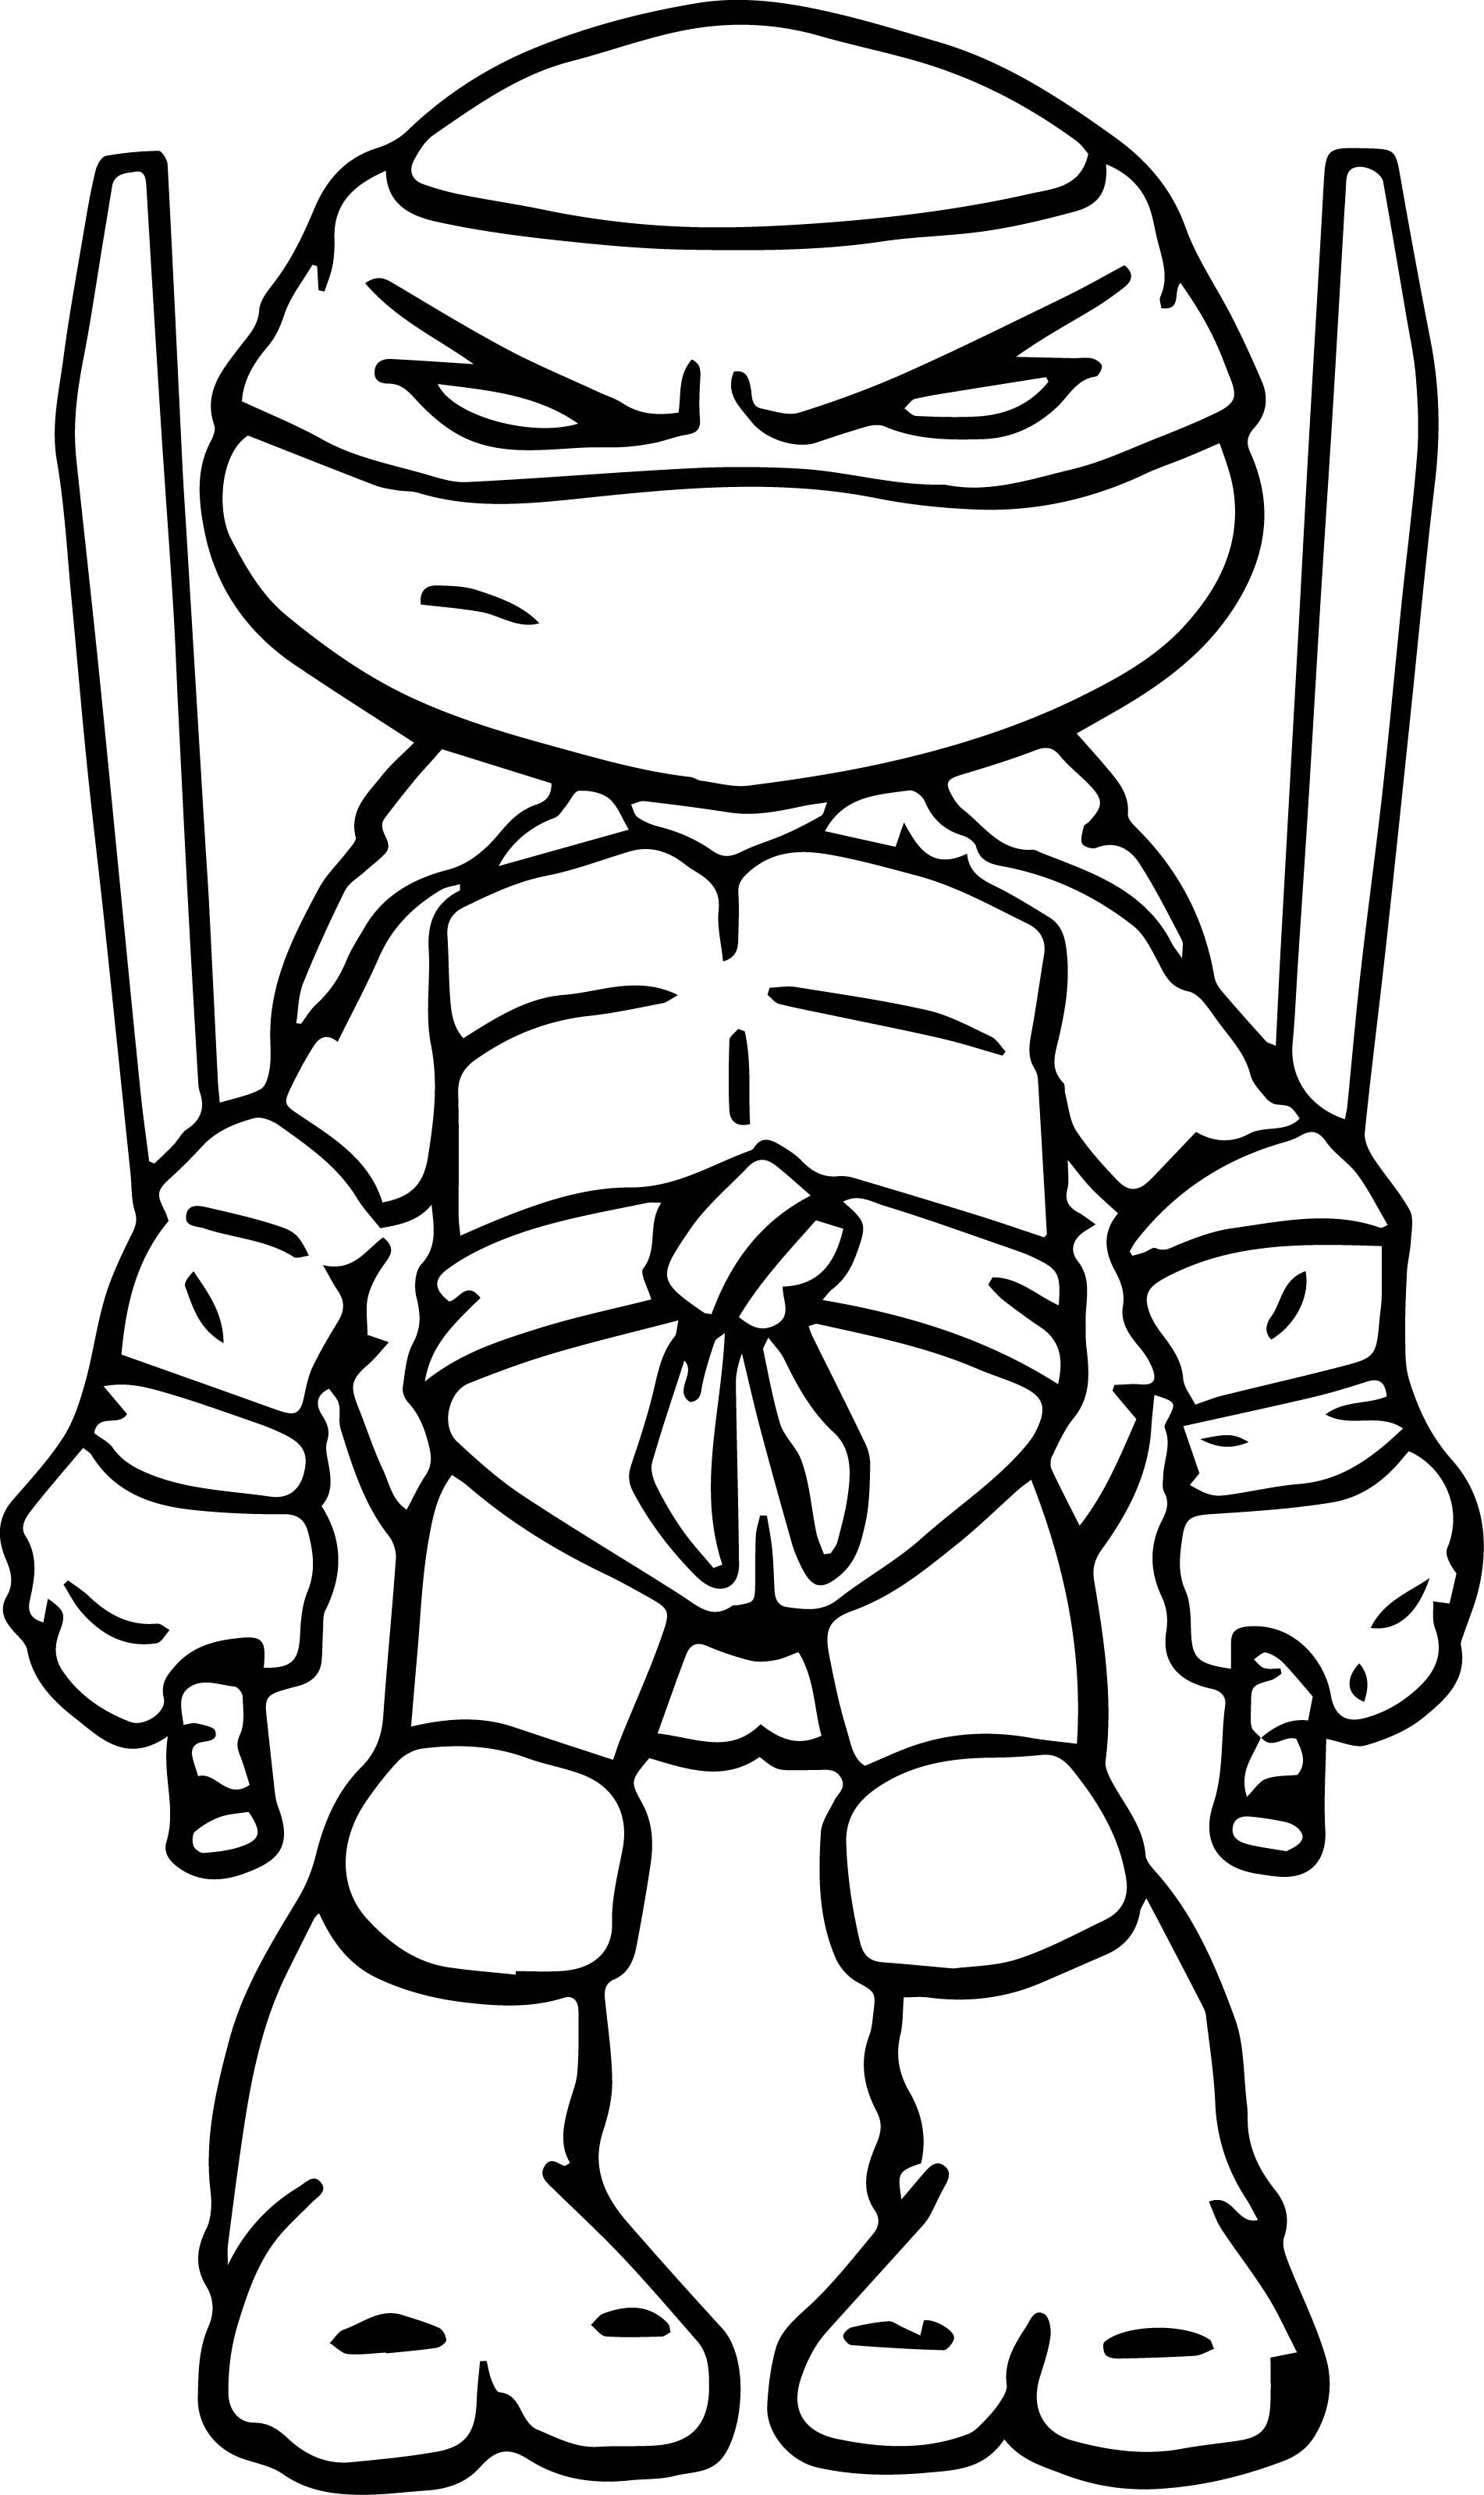 girl ninja turtles coloring pages - photo#4